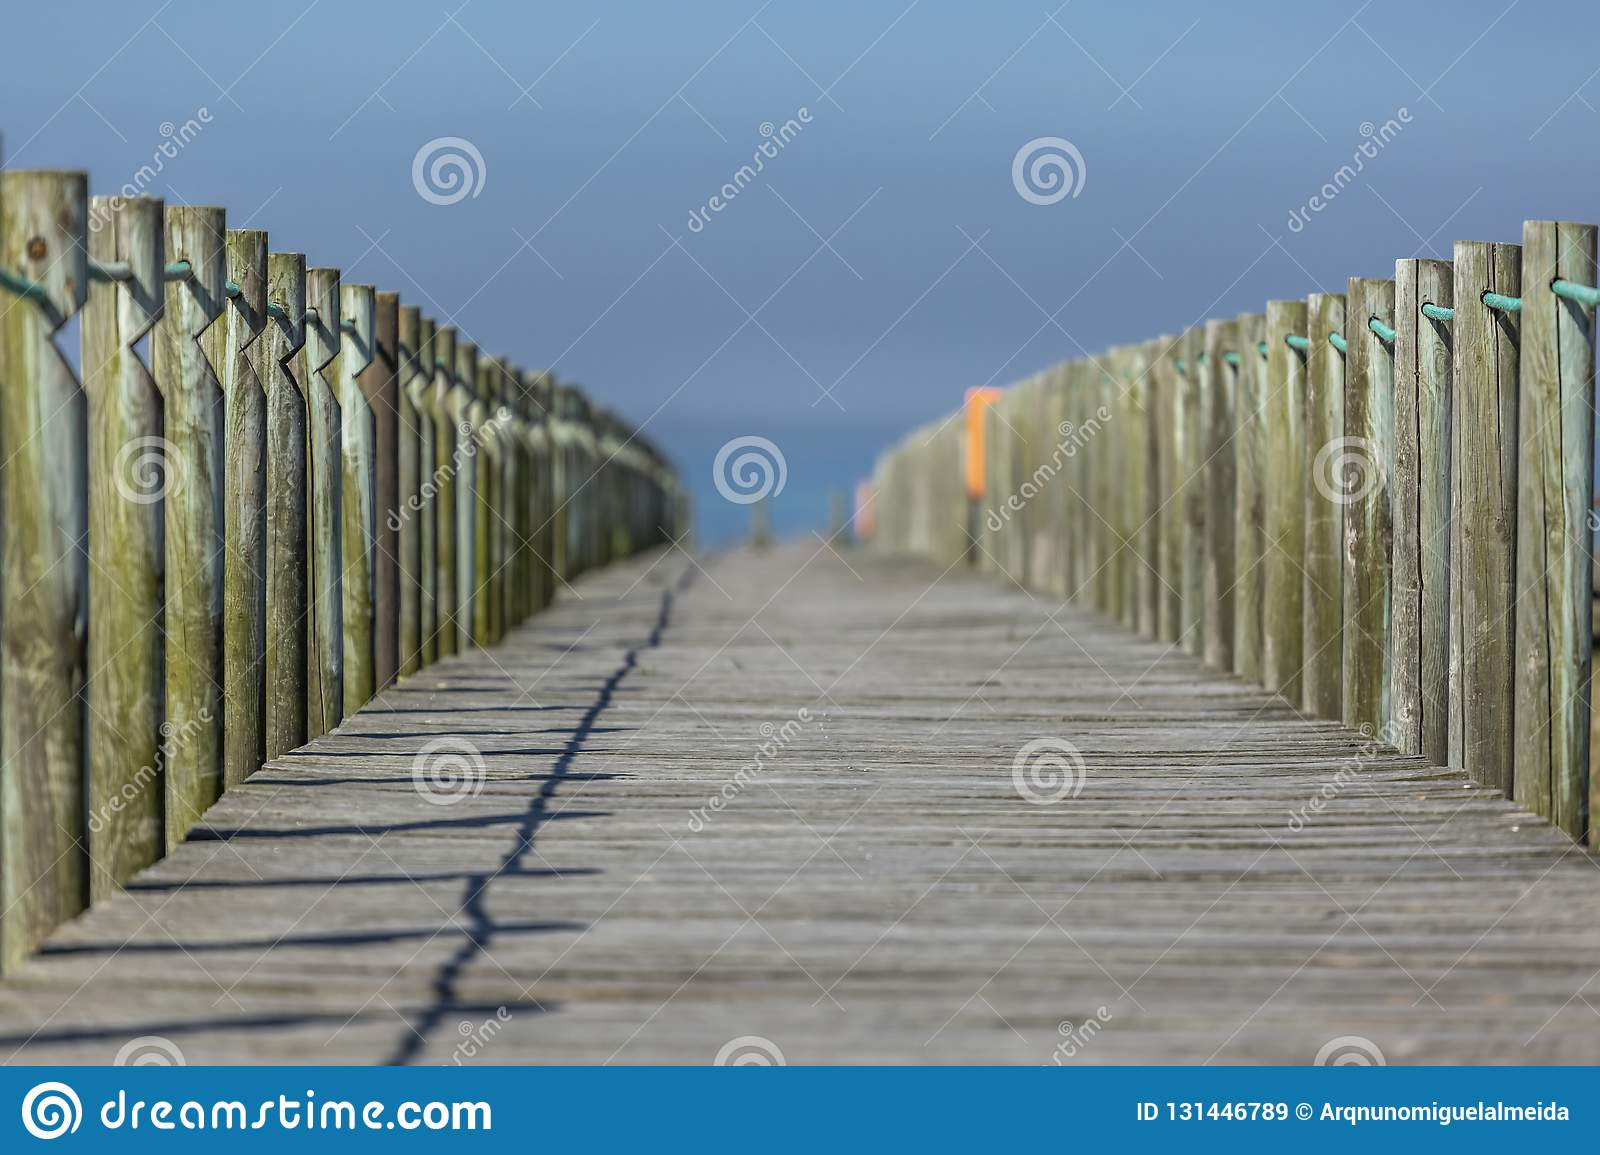 Perspective view of wooden pedestrian walkway, towards the ocean, next to the beach, Portugal